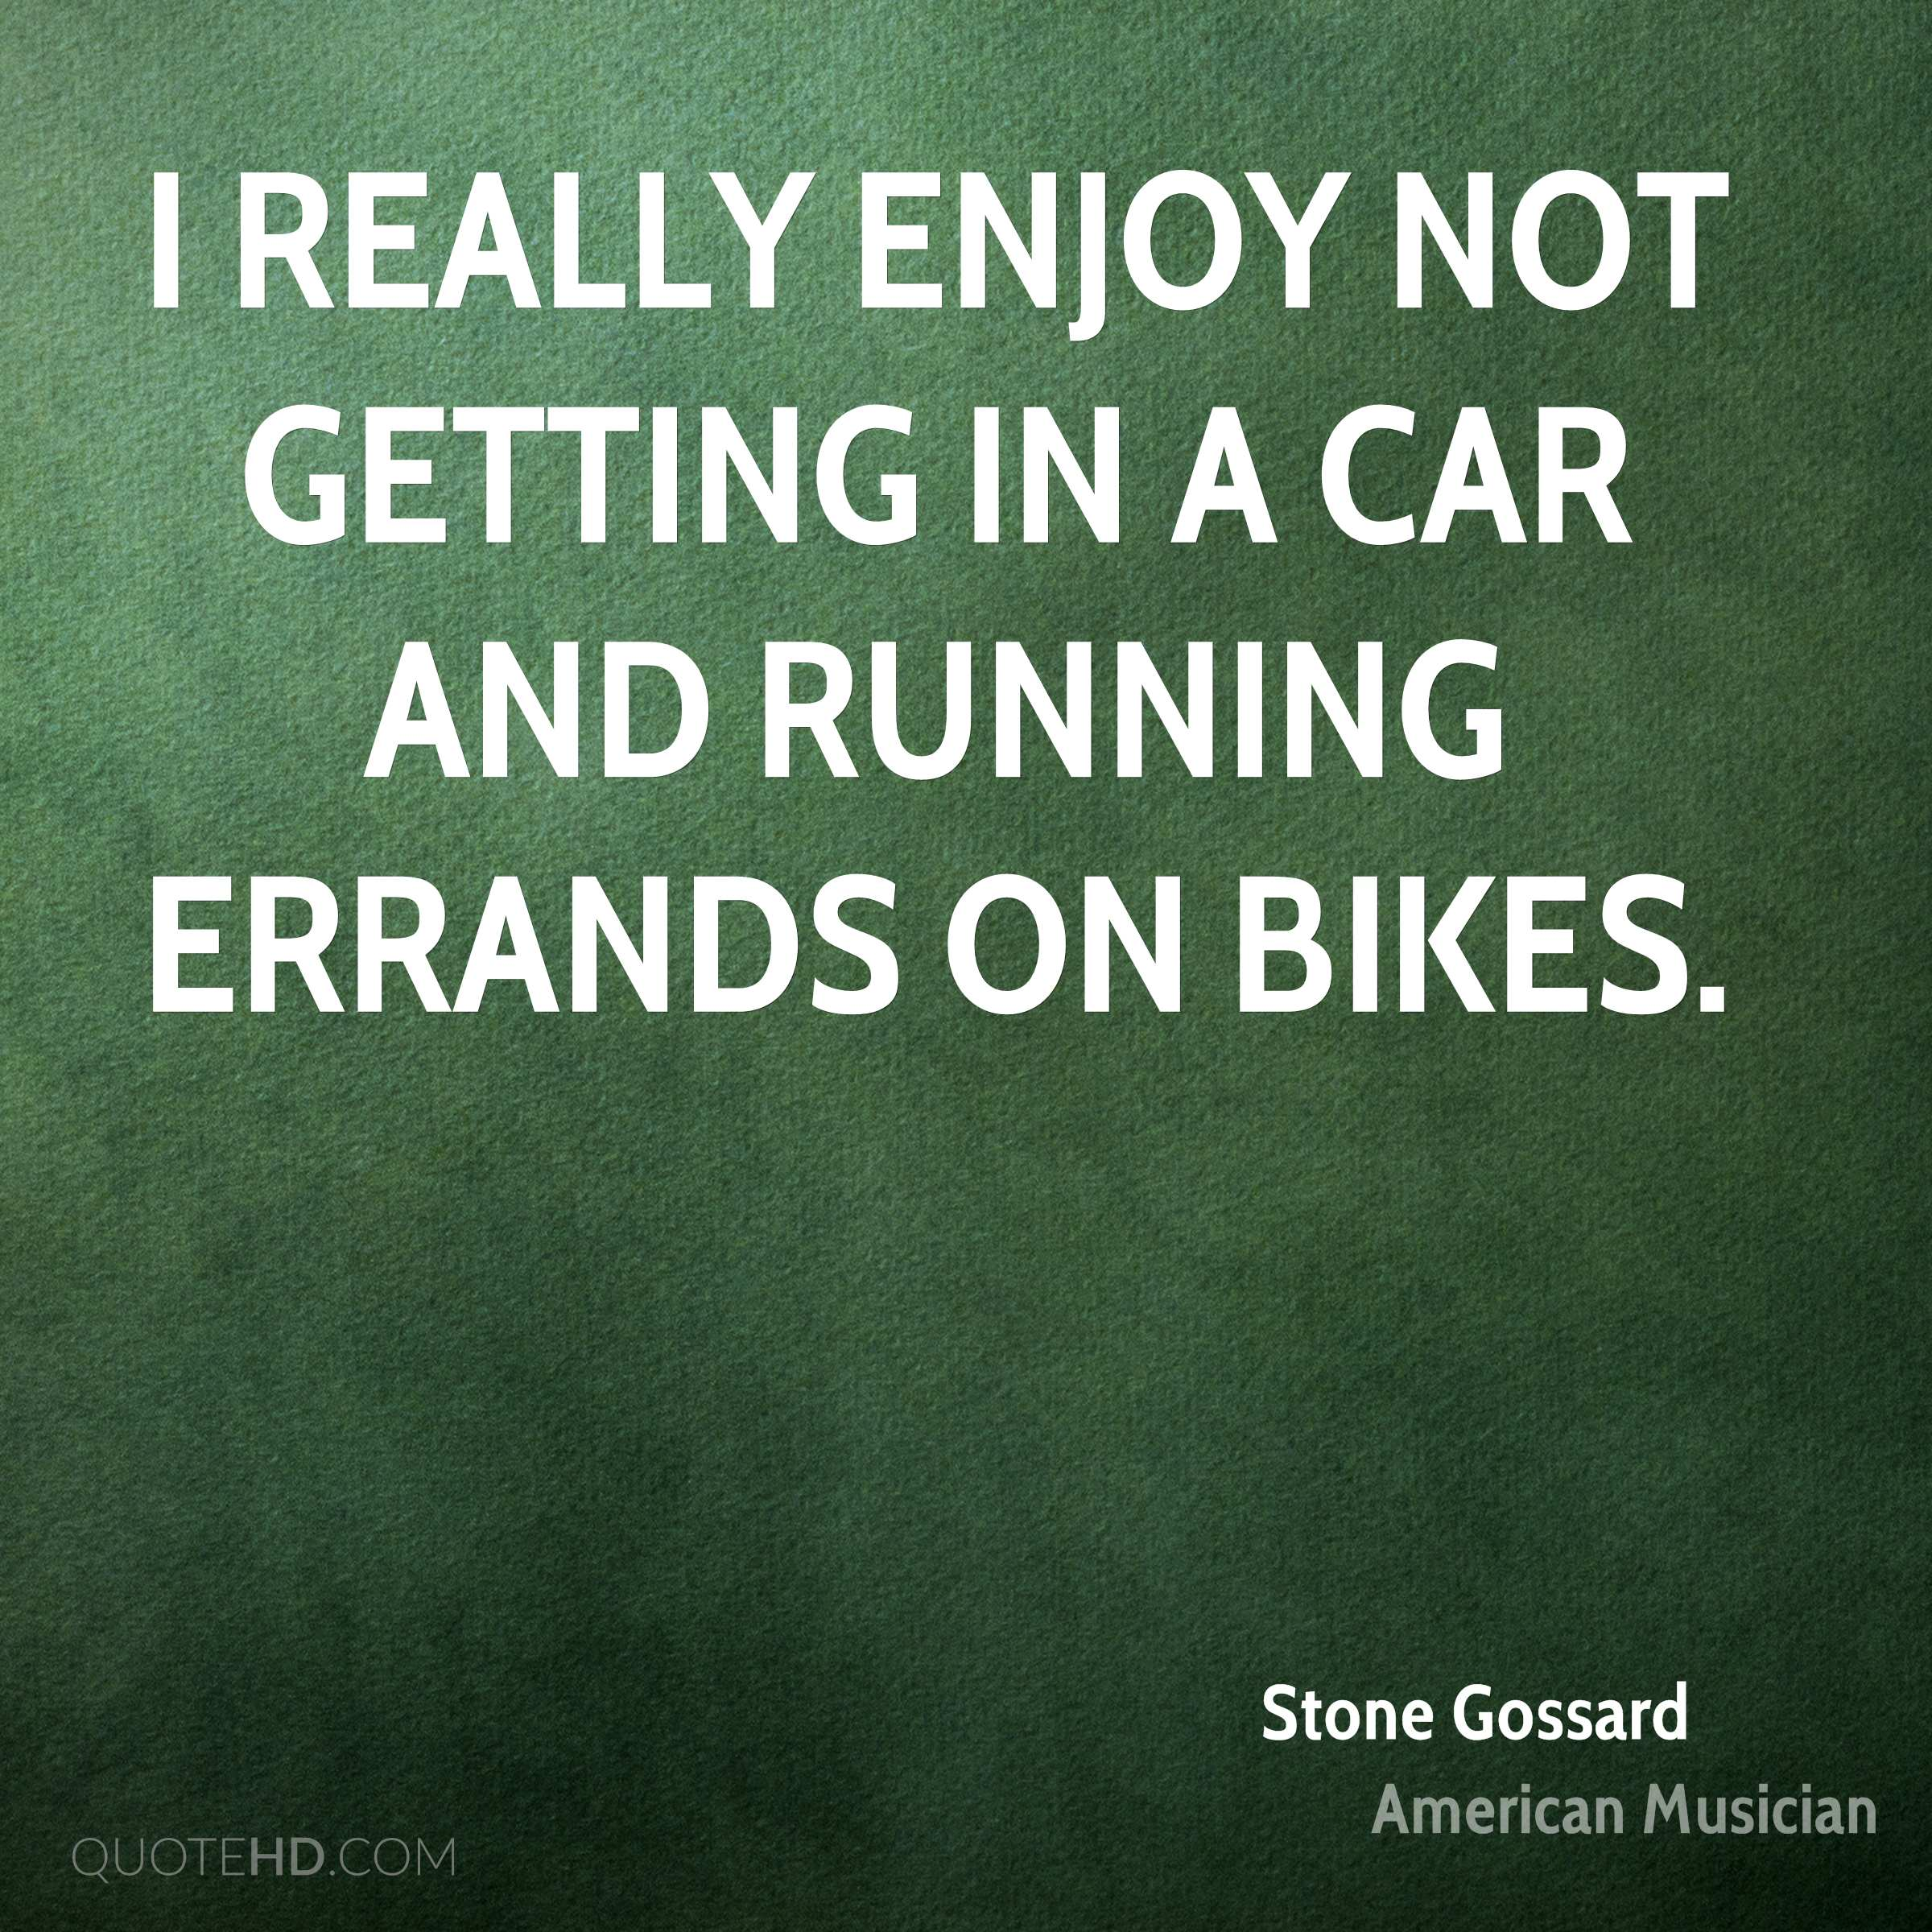 I really enjoy not getting in a car and running errands on bikes.